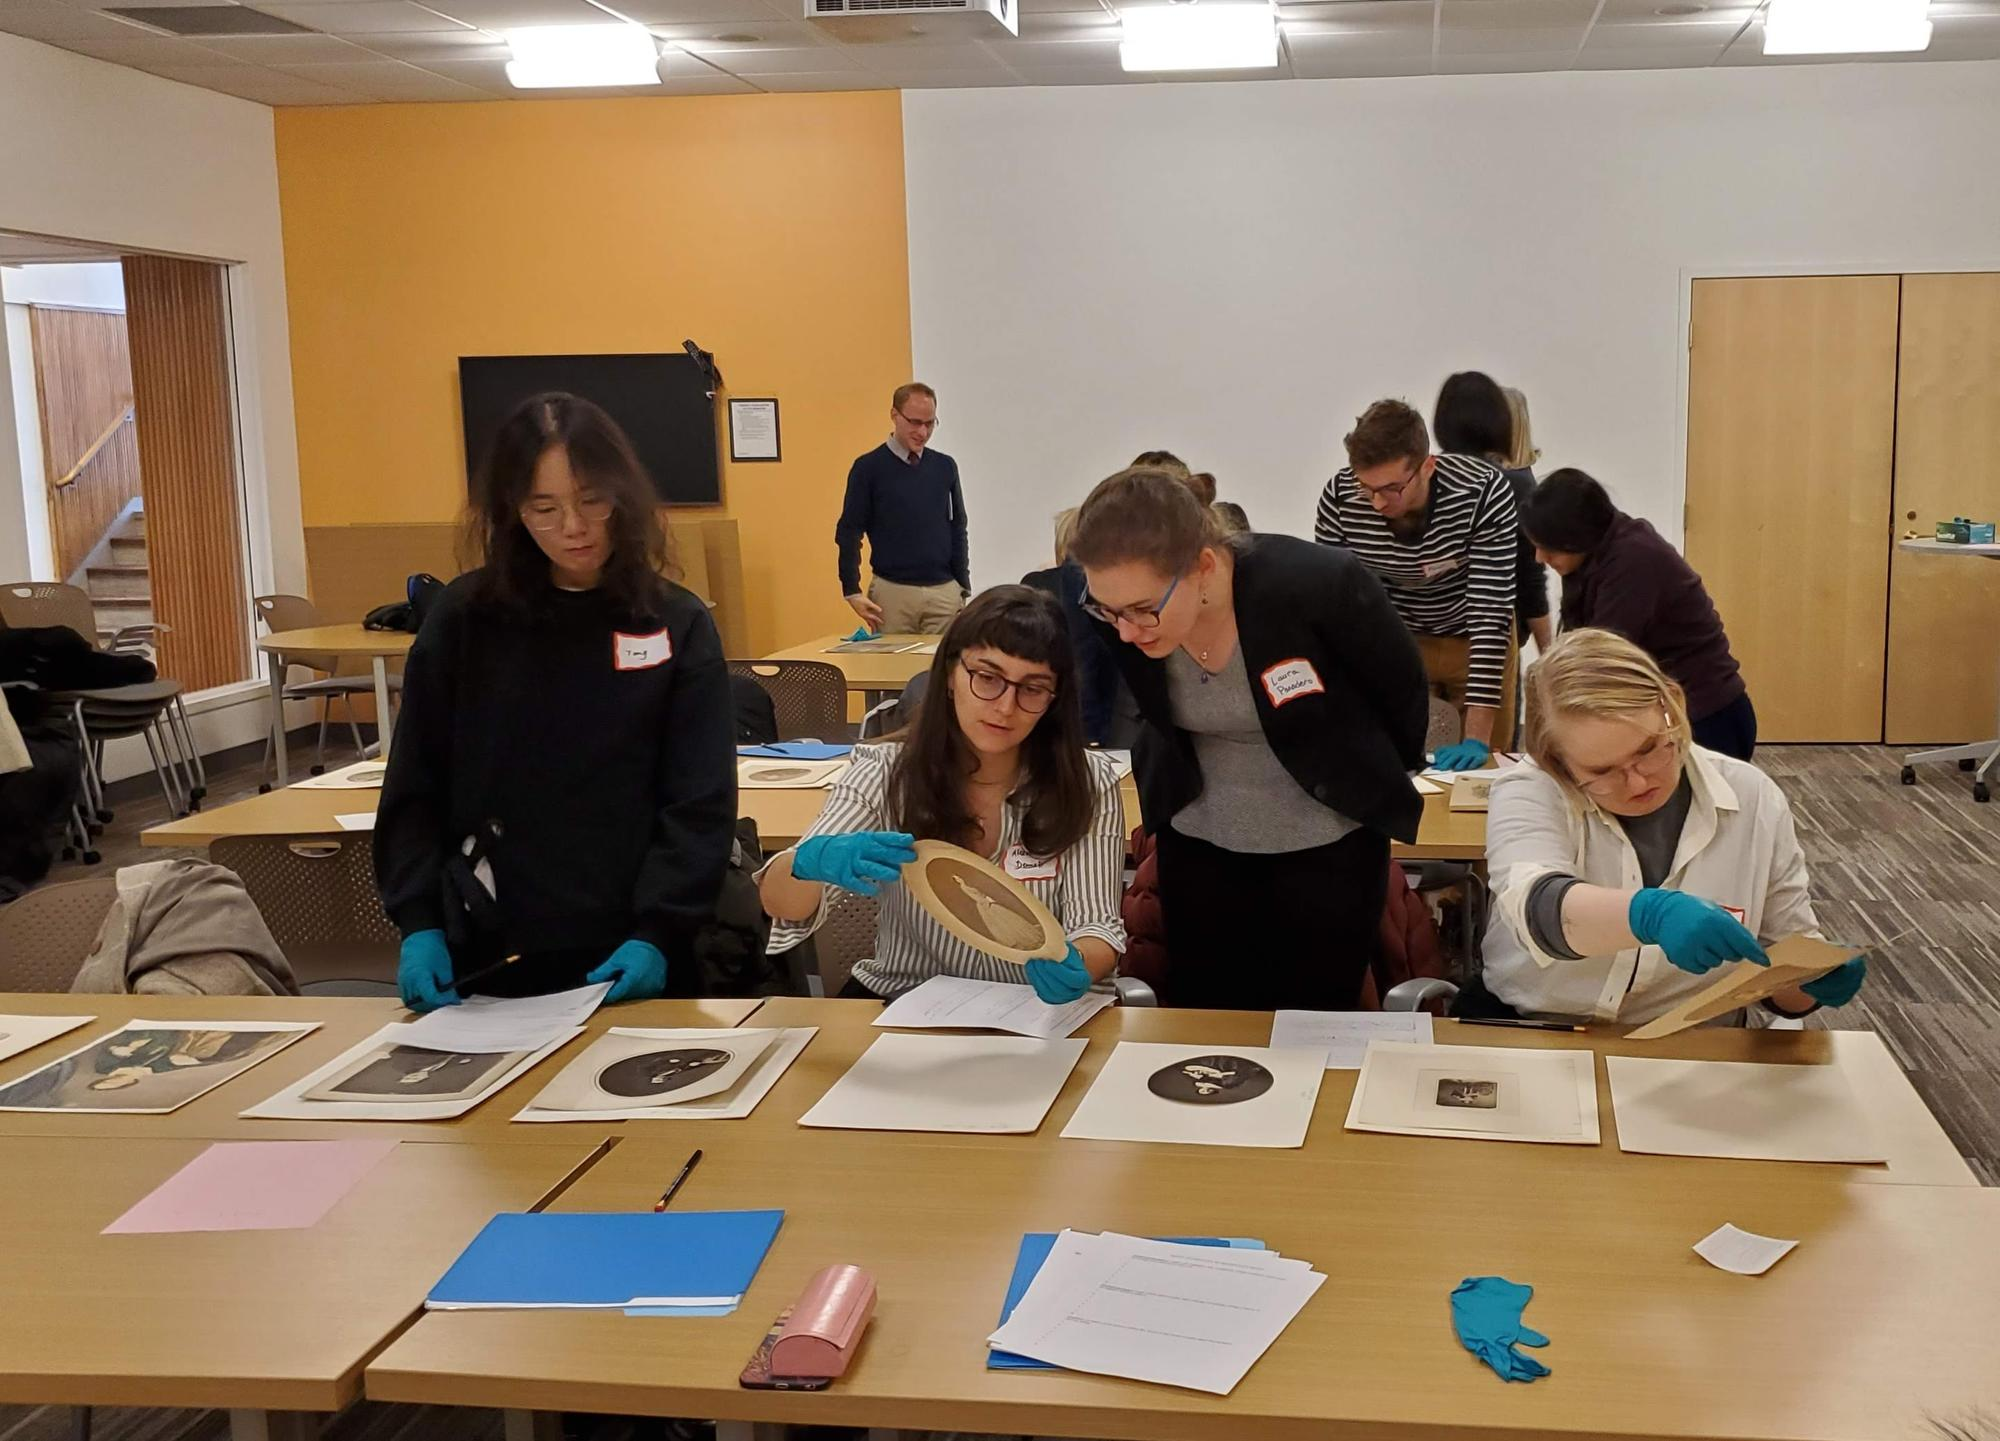 Students gathered around a table looking at salted paper prints.